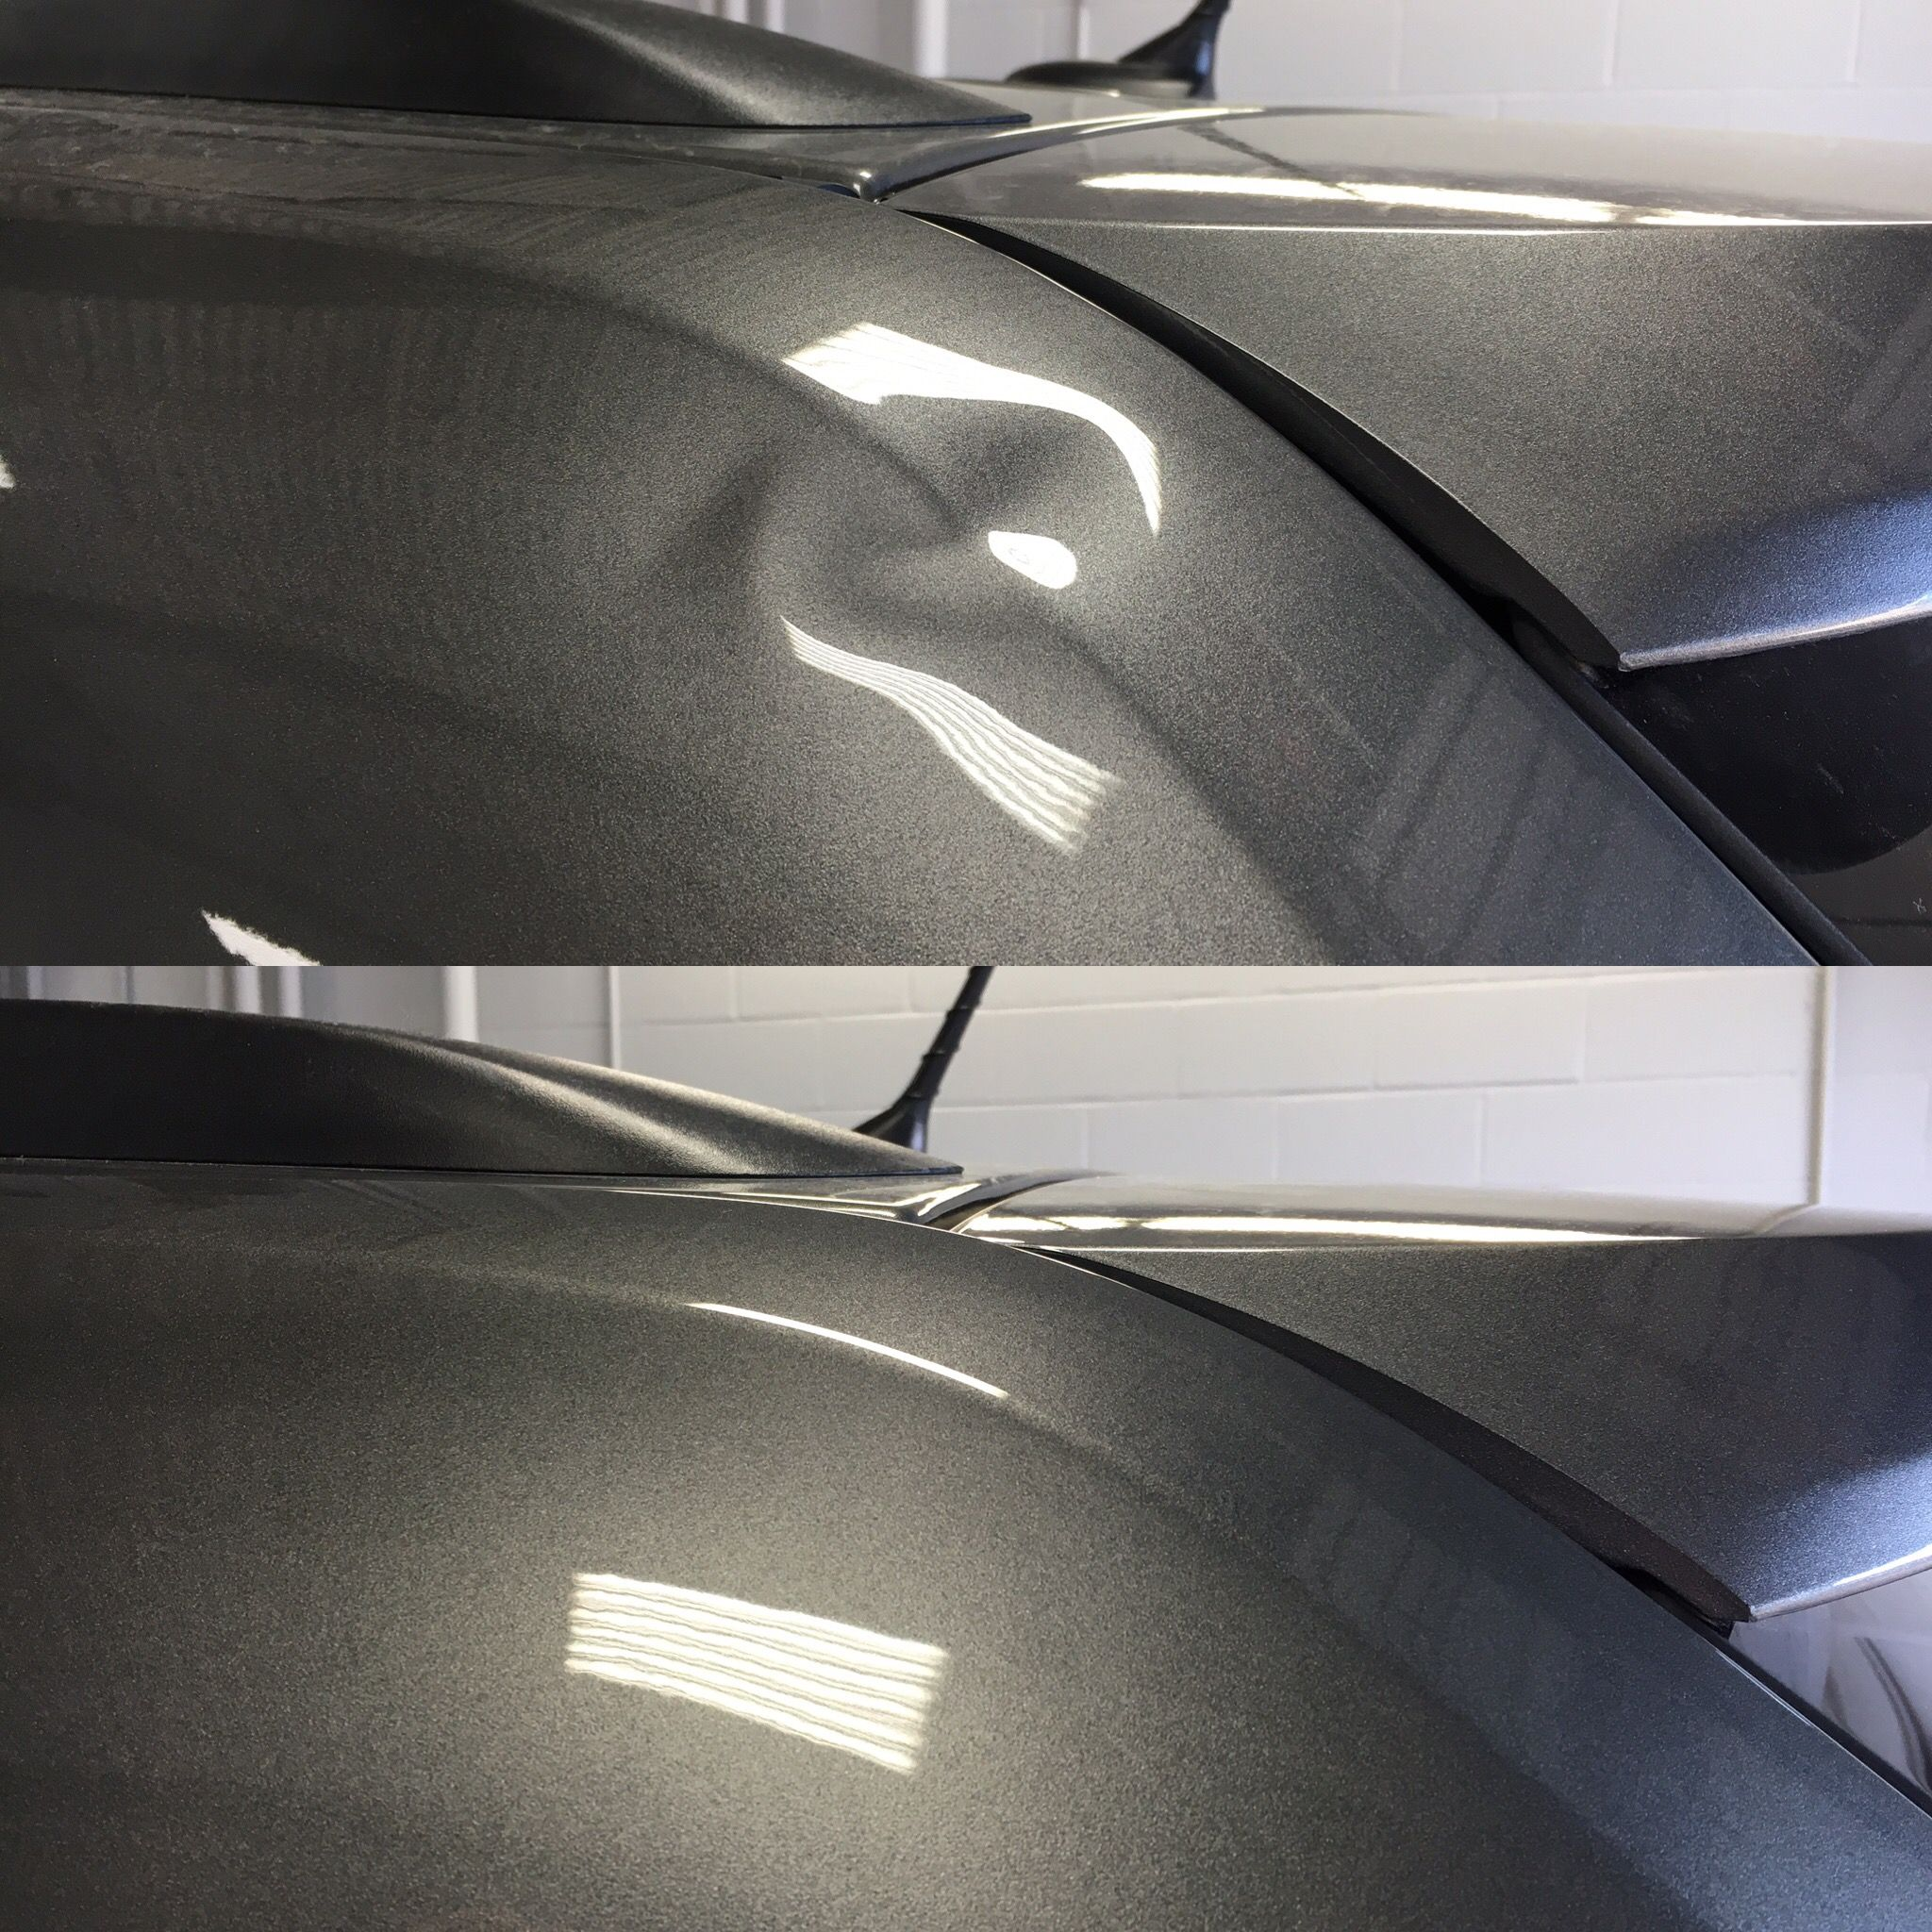 Rear Upper Bodyside Through The Body Line We Gained Access To Do This Paintless Dent Repair From The Back Side By Removing The Ta Car Dent Repair Car Dent Car